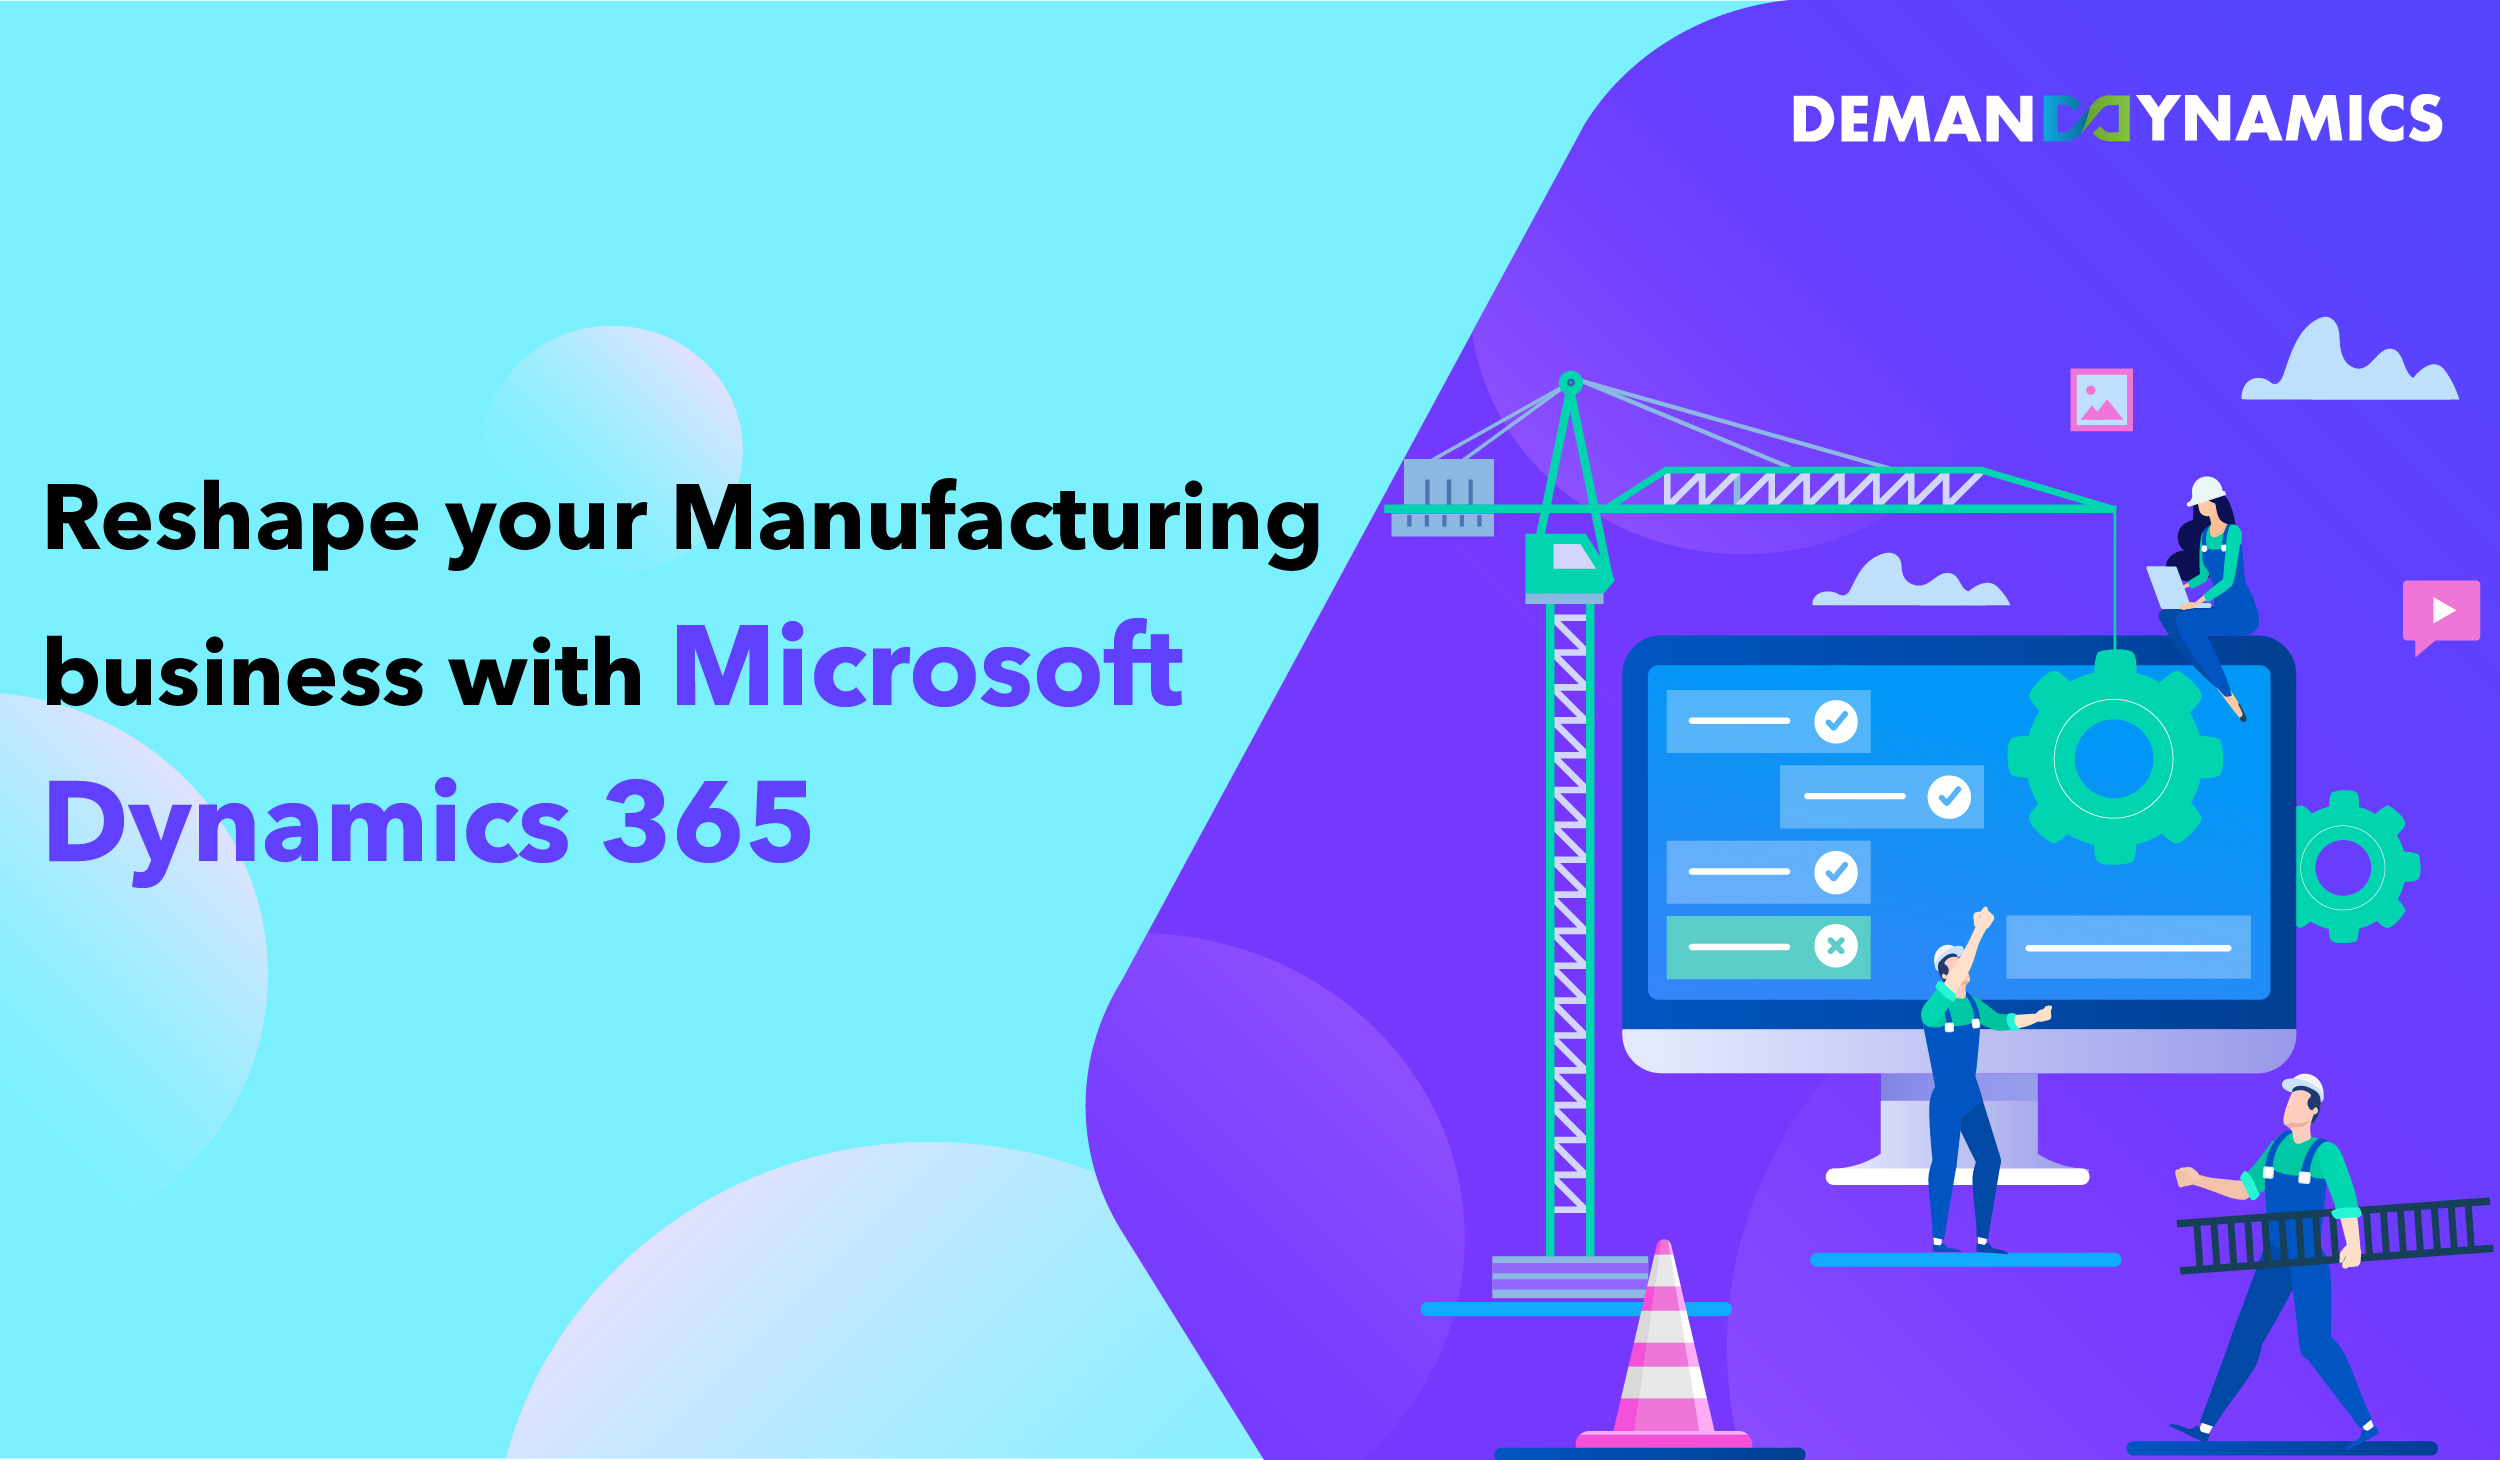 How to transform your Manufacturing Business with Microsoft Dynamics 365?